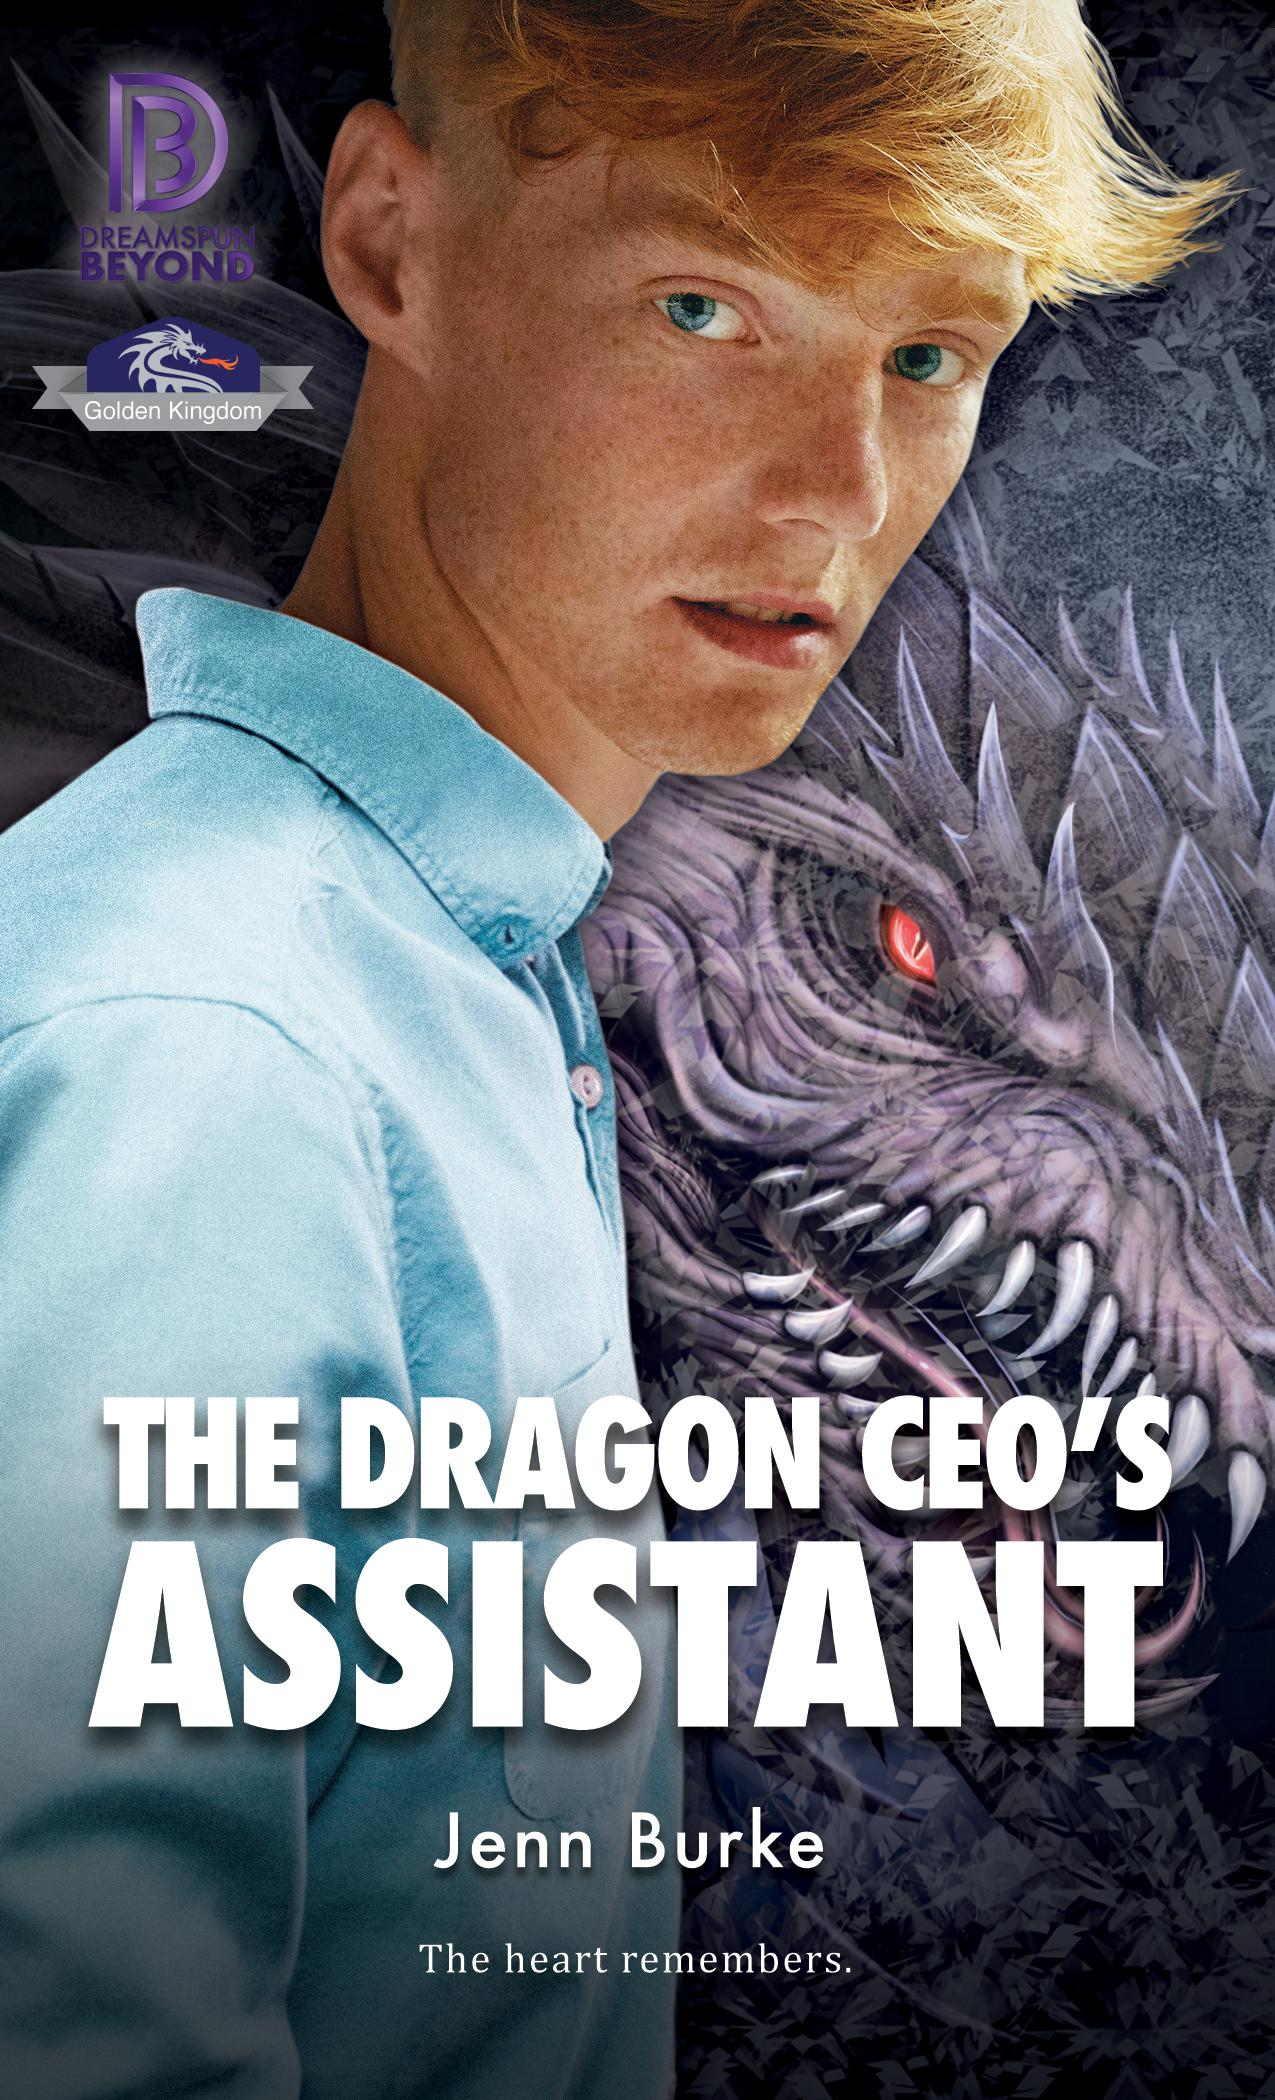 Guest Post: The Dragon CEO's Assistant by Jenn Burke